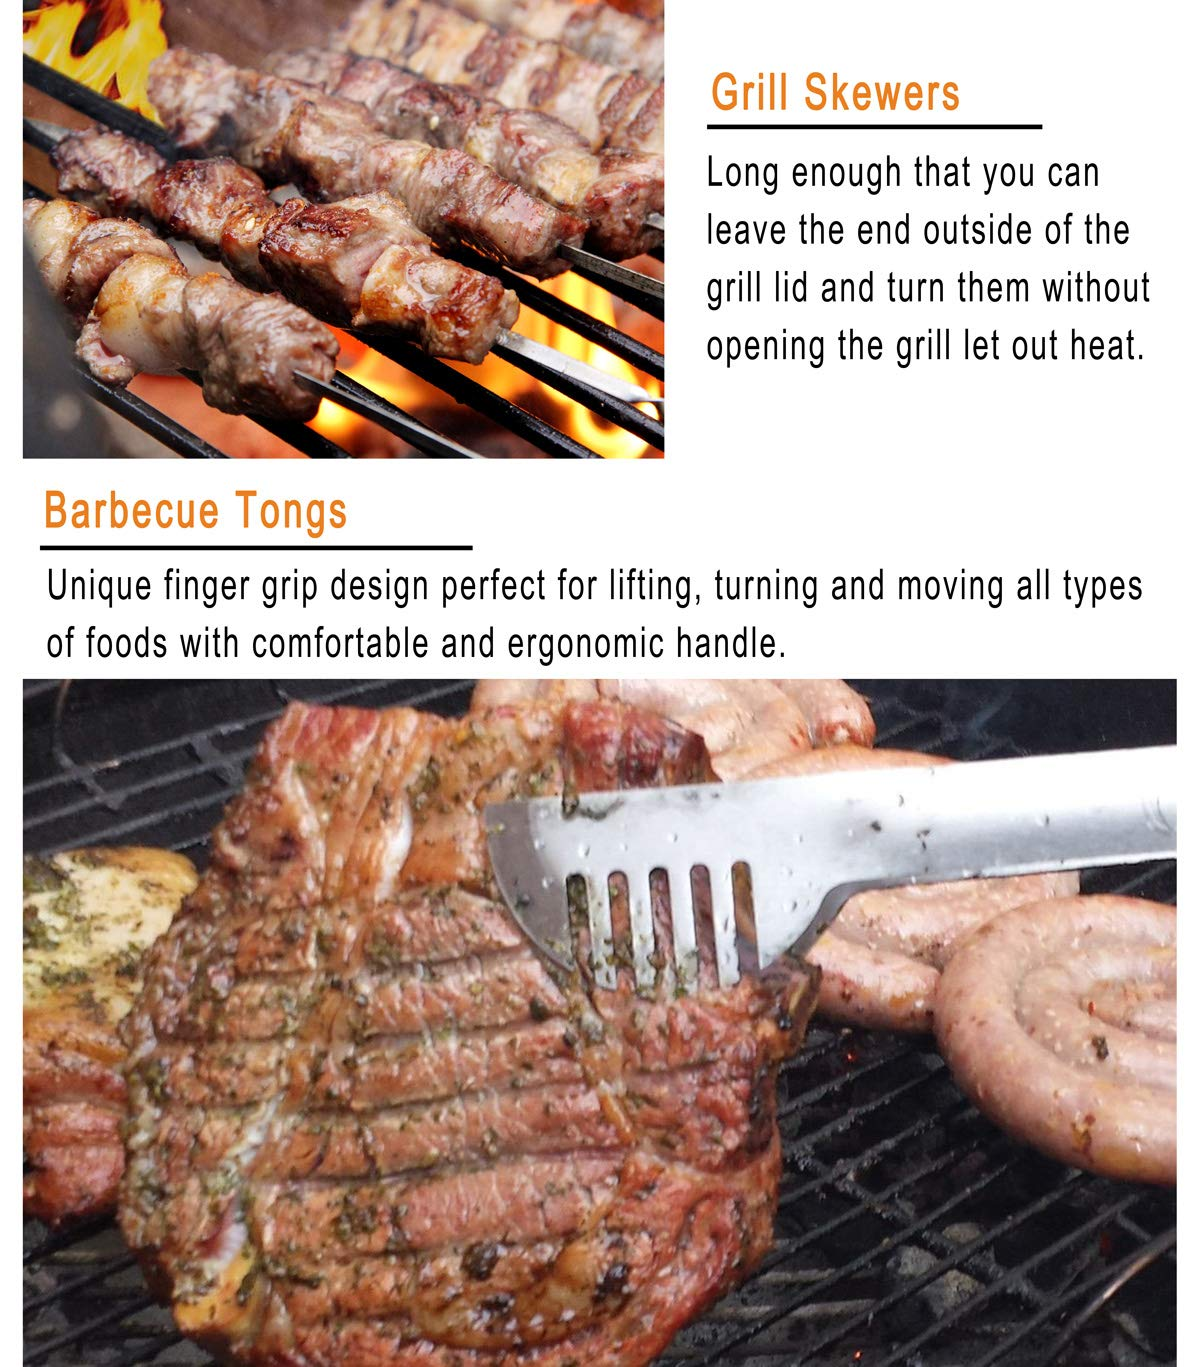 grilljoy 25 Piece BBQ Grill Tool Set- Premium Stainless Steel Grilling Accessories with Heat Proof Grip in Aluminum Case, Perfect BBQ Tools Set Gift for Father's Day, Birthday, Camping and Tailgating by grilljoy (Image #6)